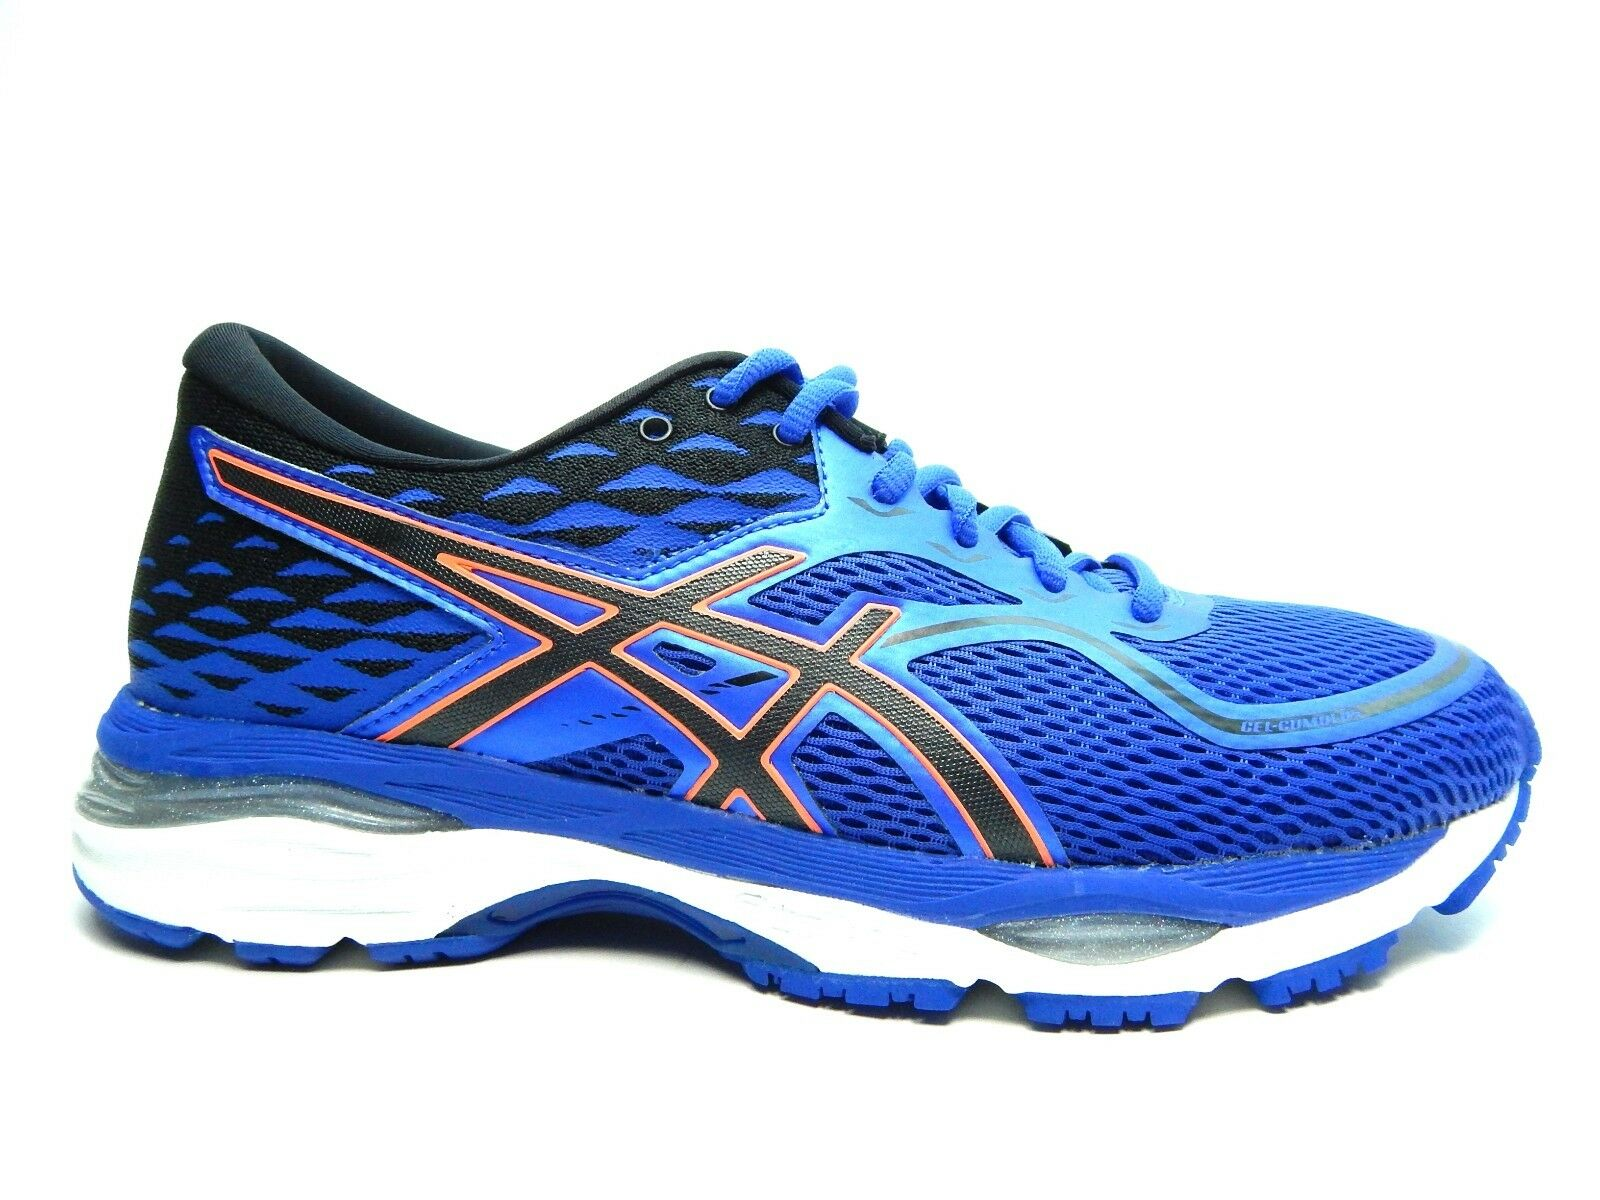 ASICS GEL CUMULUS 19 Price reduction T7C6N 4890 BLUE PURPLE BLACK WOMEN SHOES SIZE 6.5-10 Cheap and beautiful fashion